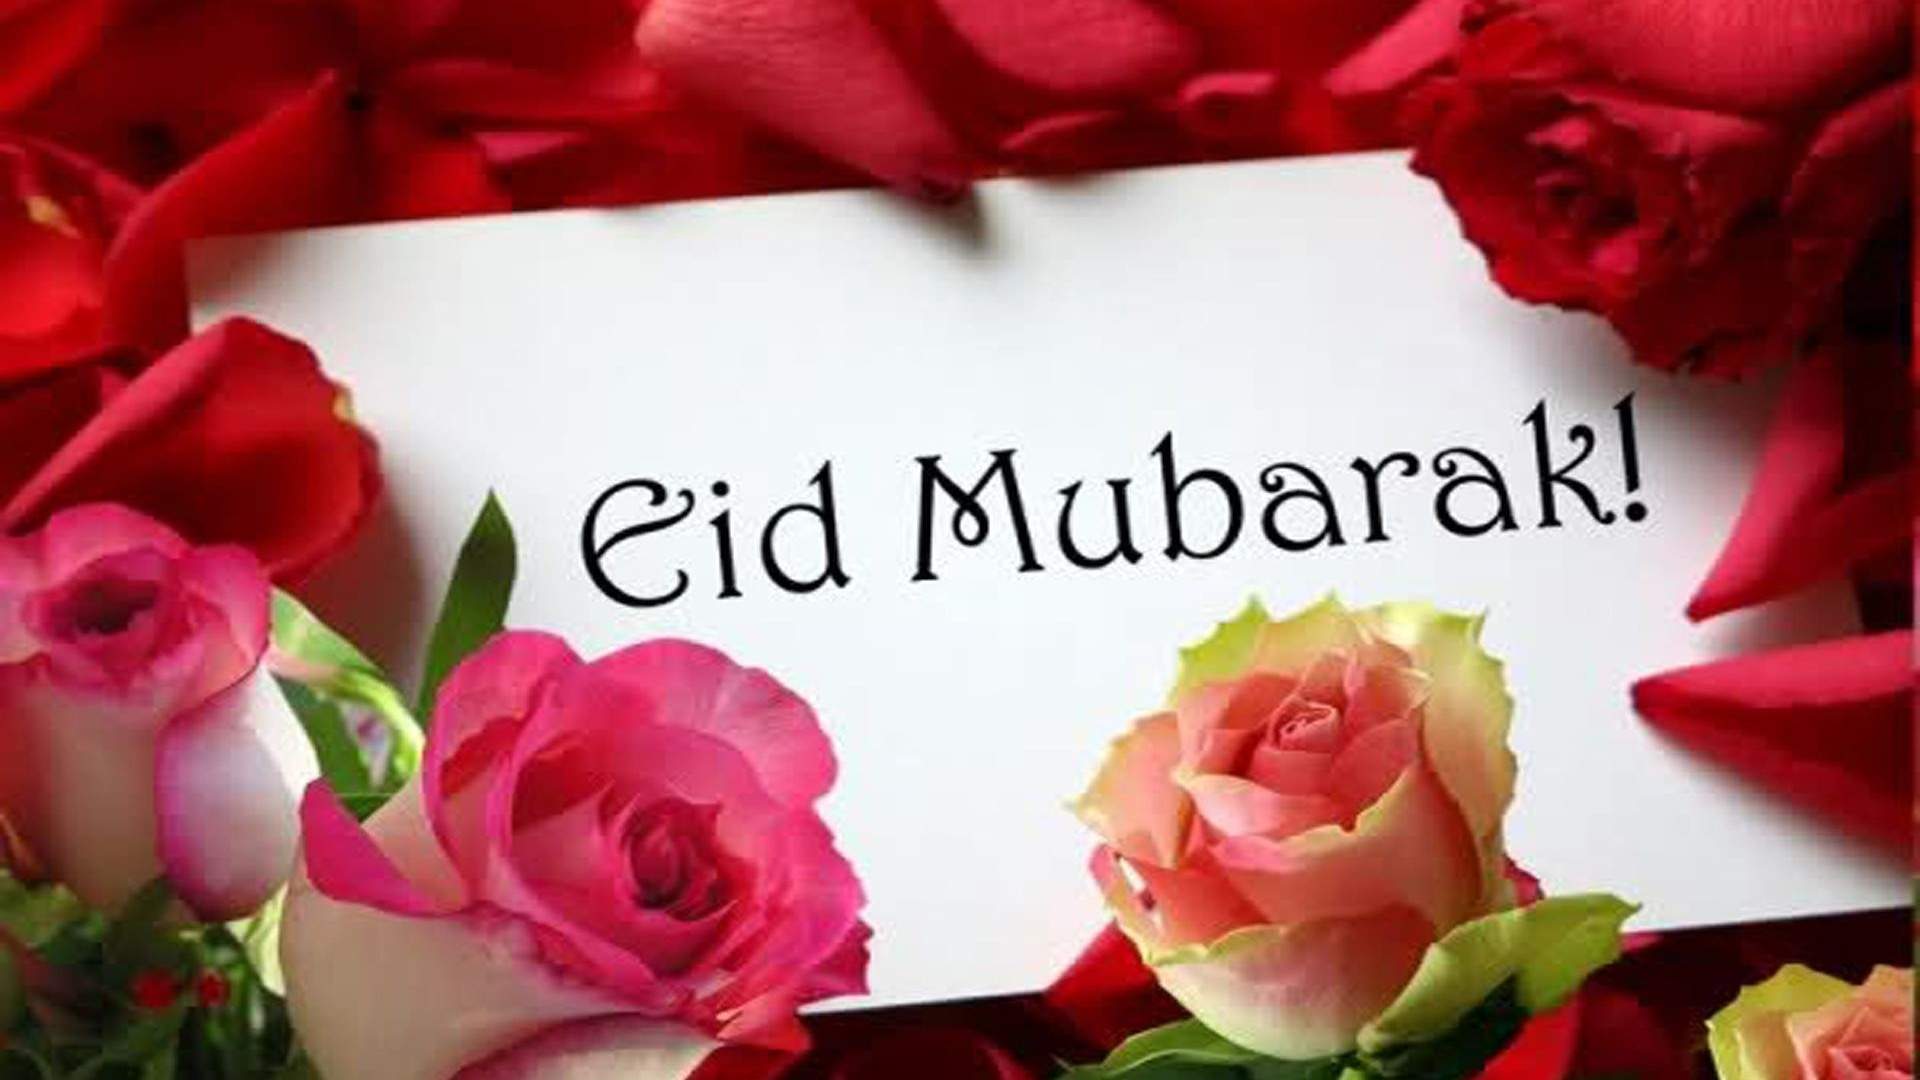 Eid mubarak cards in roses free hd wallpapers hd wallpaper eid mubarak cards in roses free hd wallpapers m4hsunfo